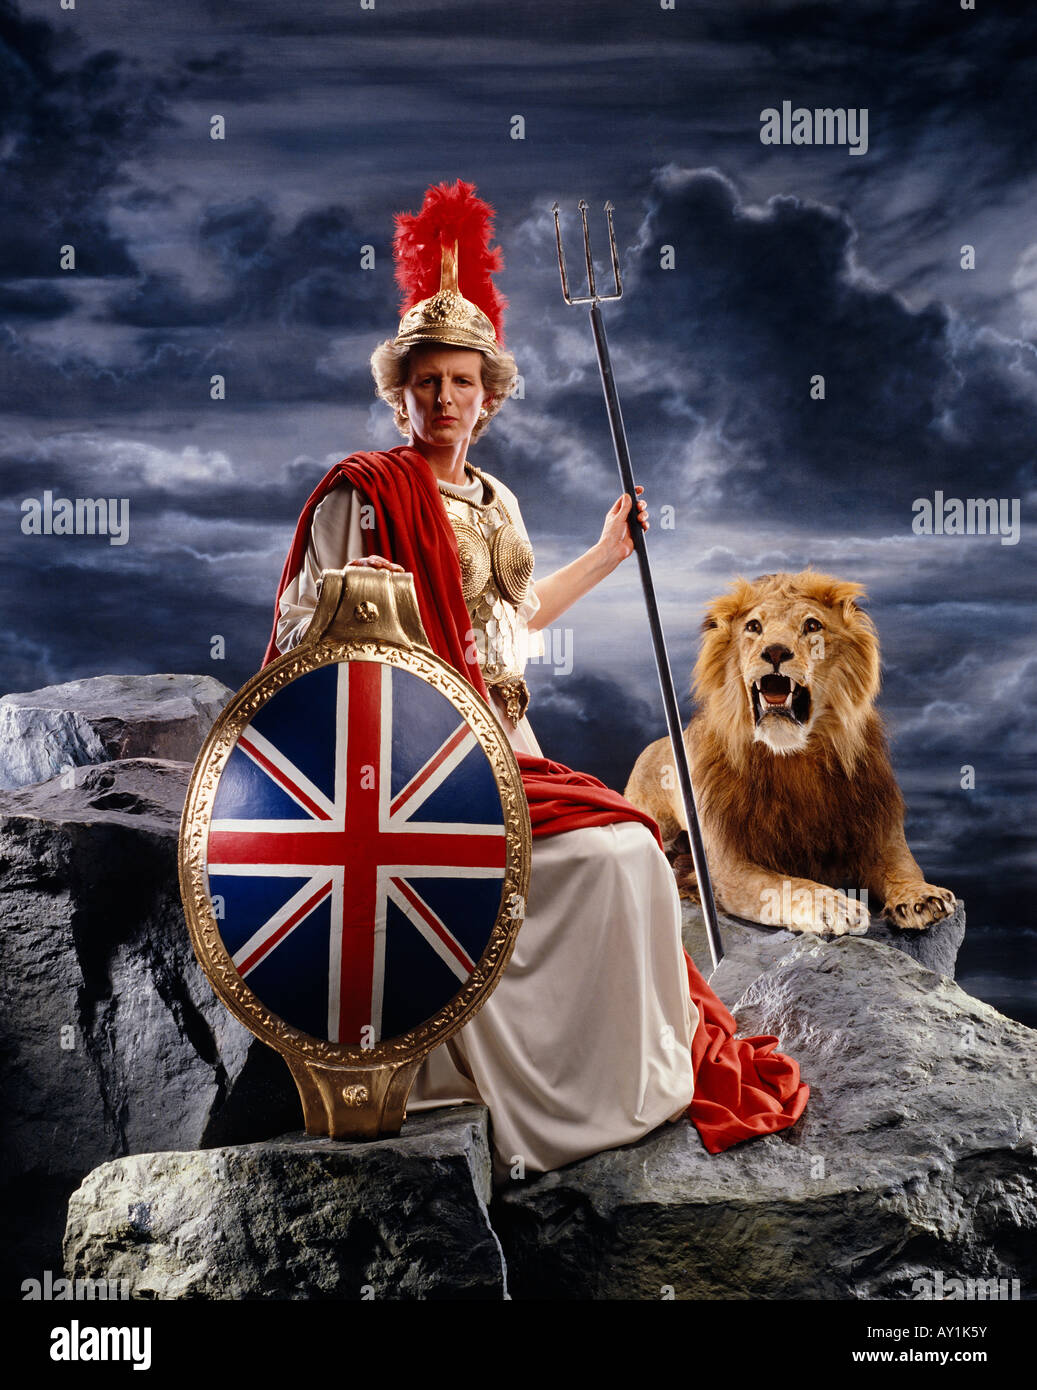 Margaret Thatcher lookalike as Britannia - Stock Image